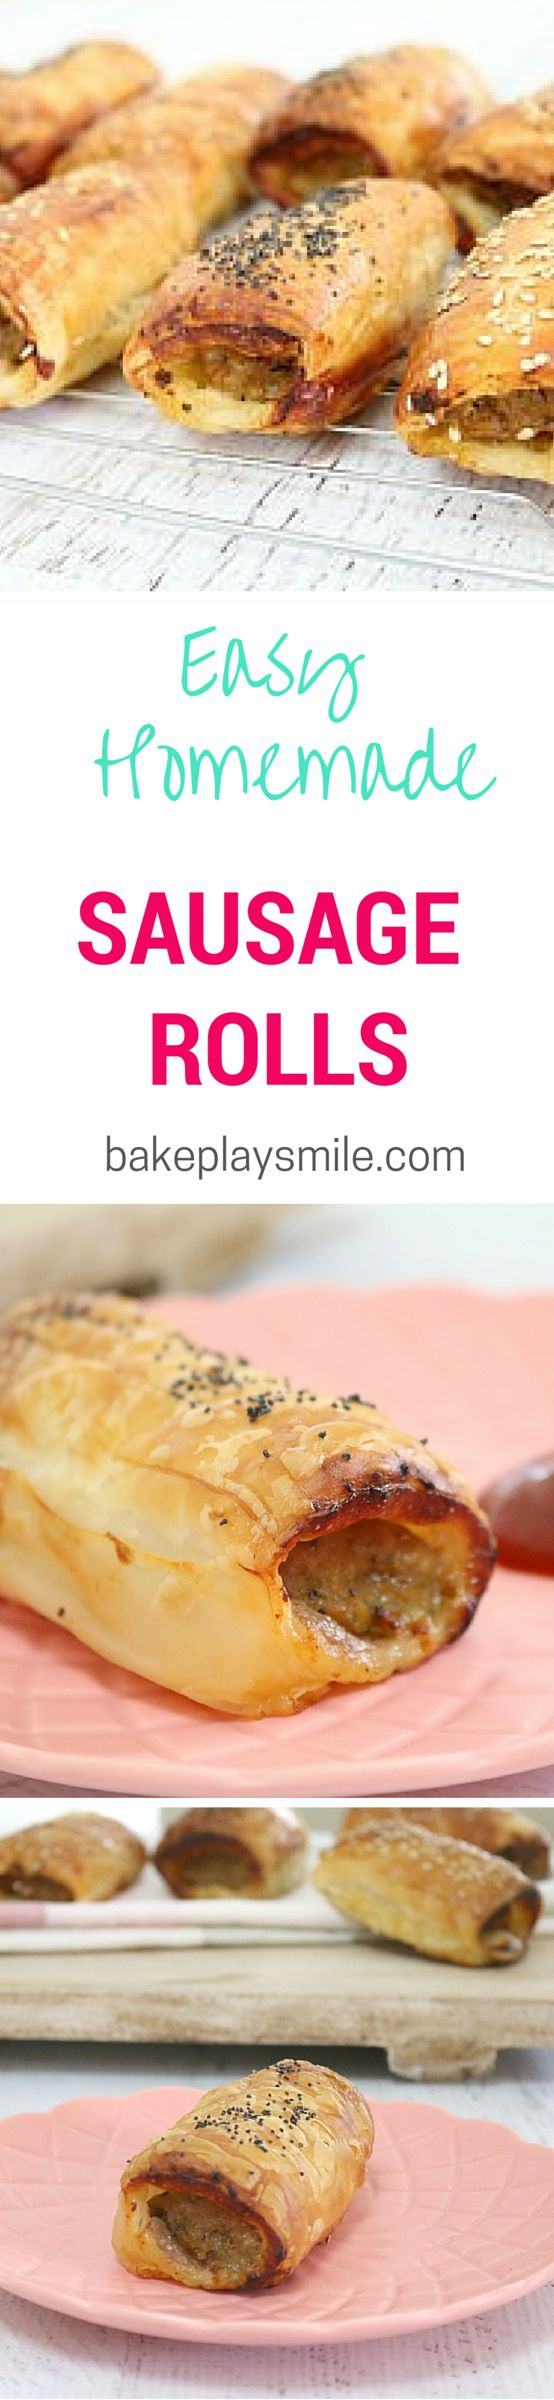 This is hands-down the best sausage roll recipe I've ever made. It's so easy! I…